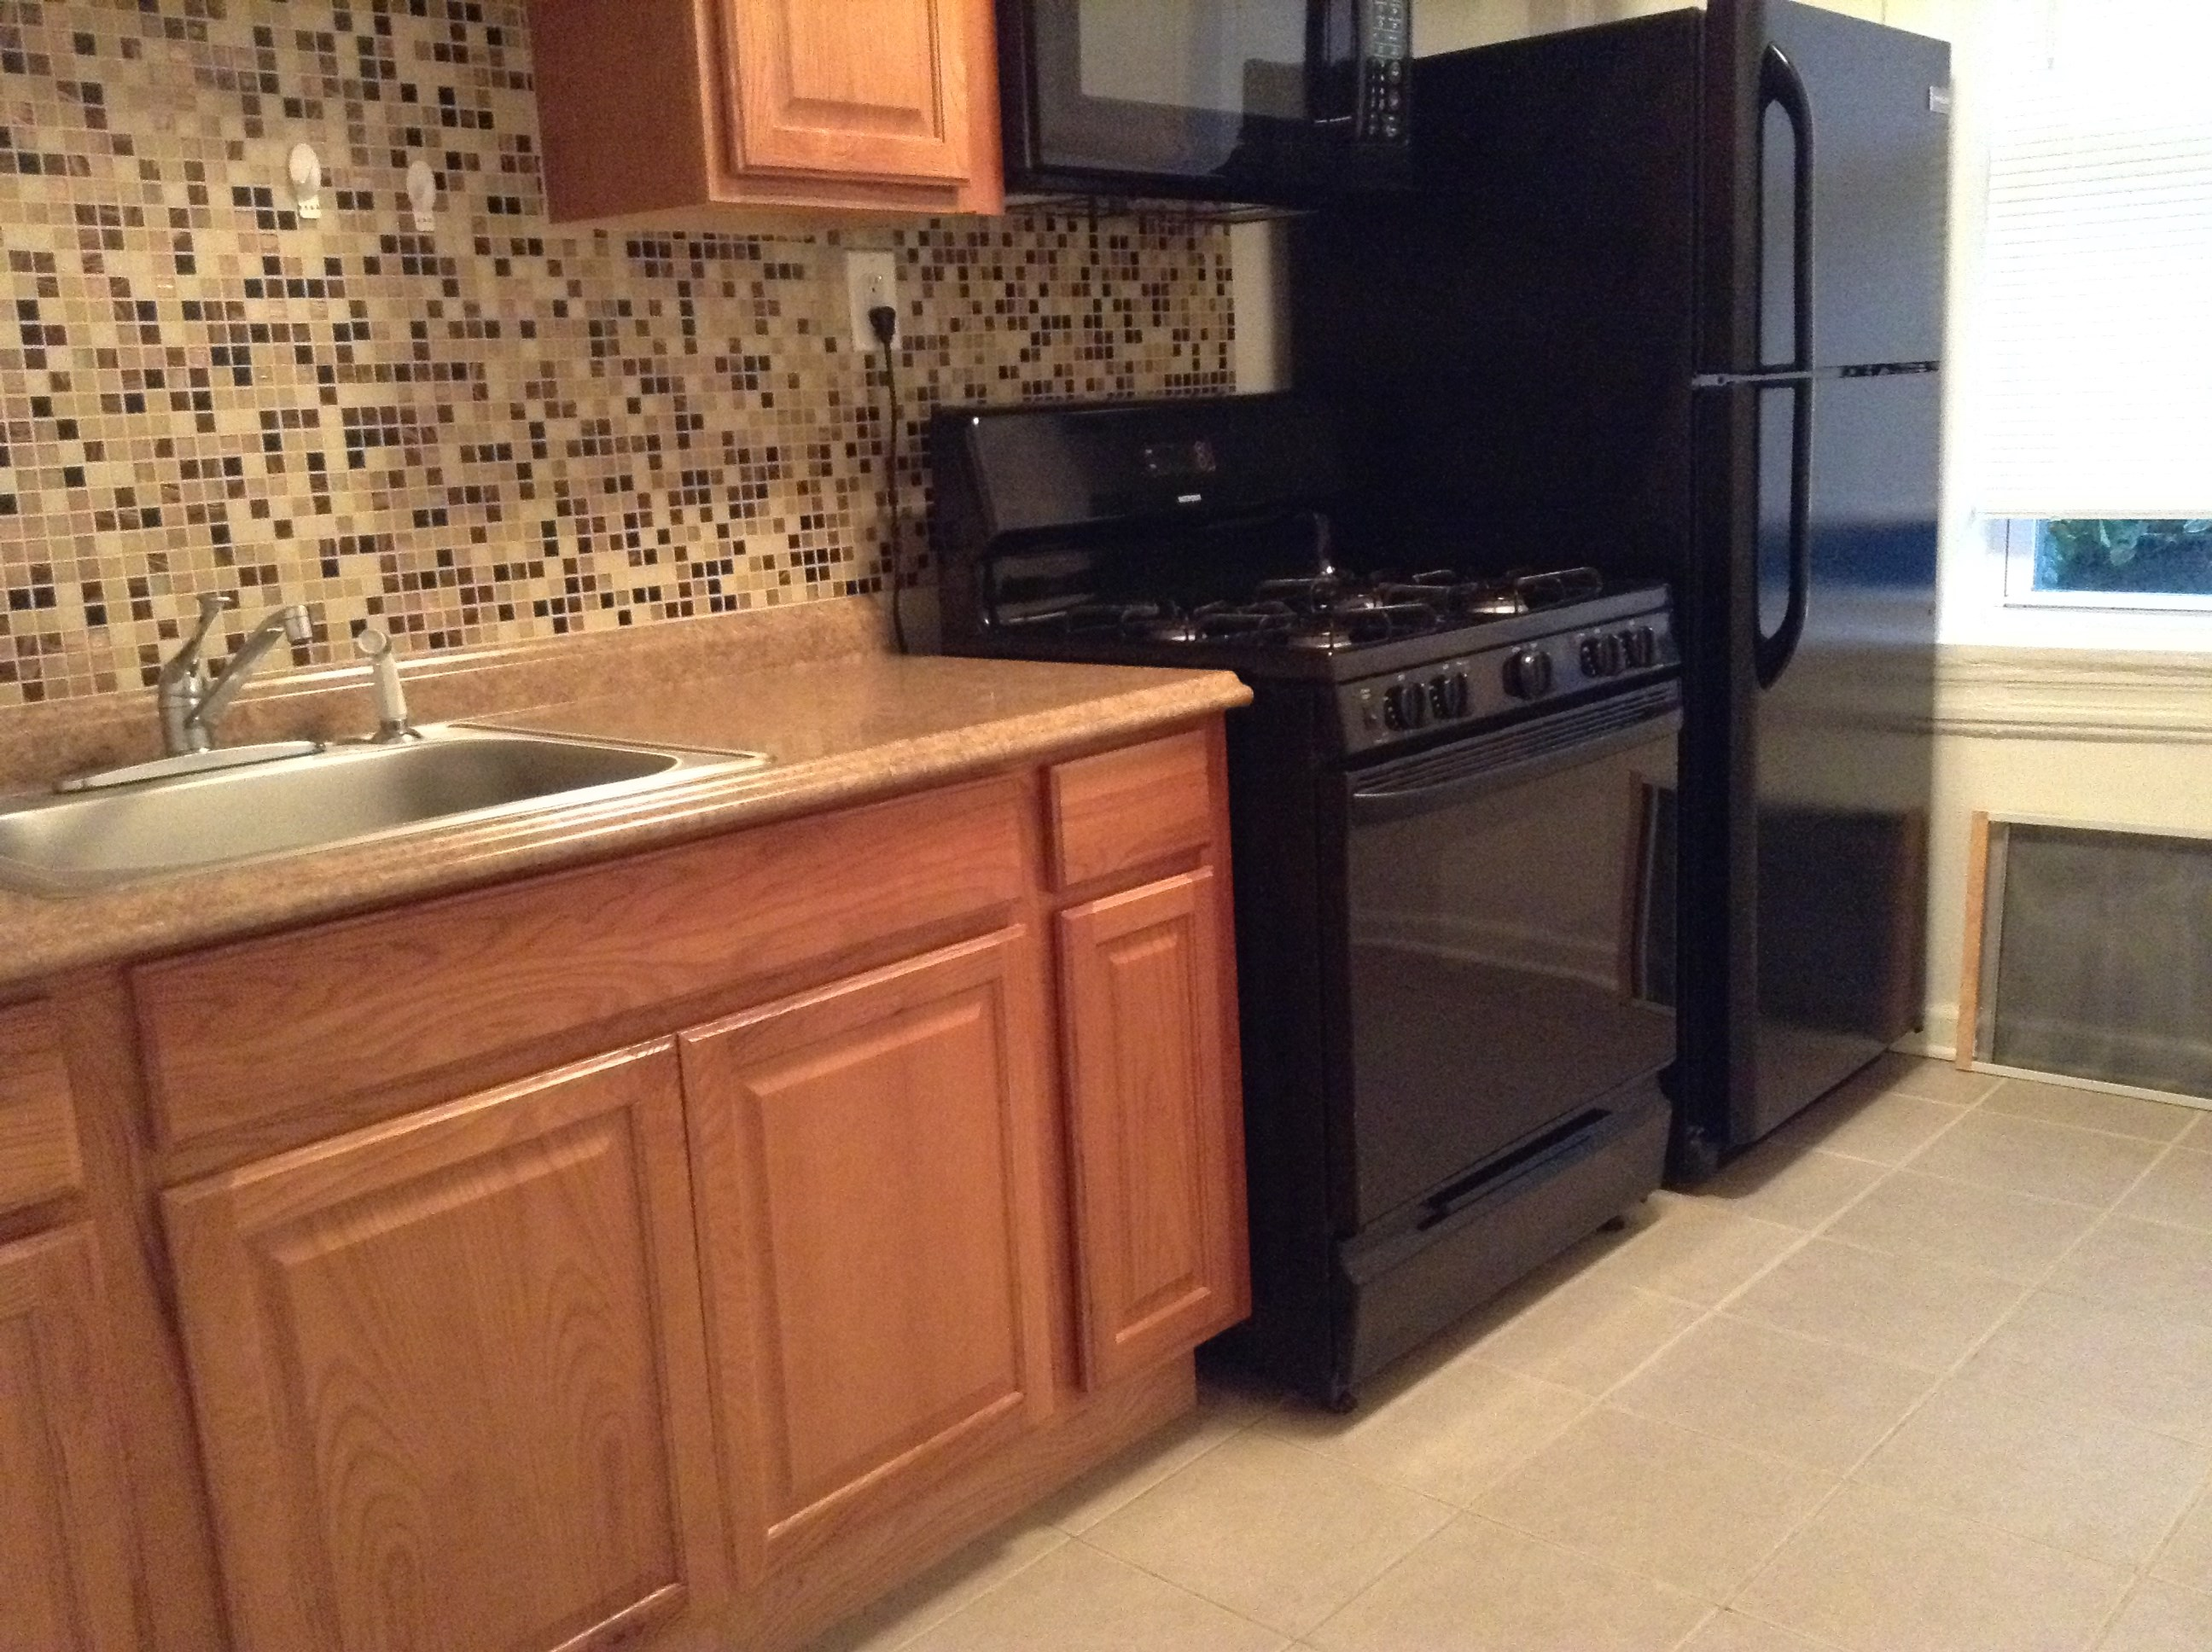 Buy a car find a house or apartment furniture appliances and more - Newly Renovated Apartment Very Quiet And Good Area In Heights